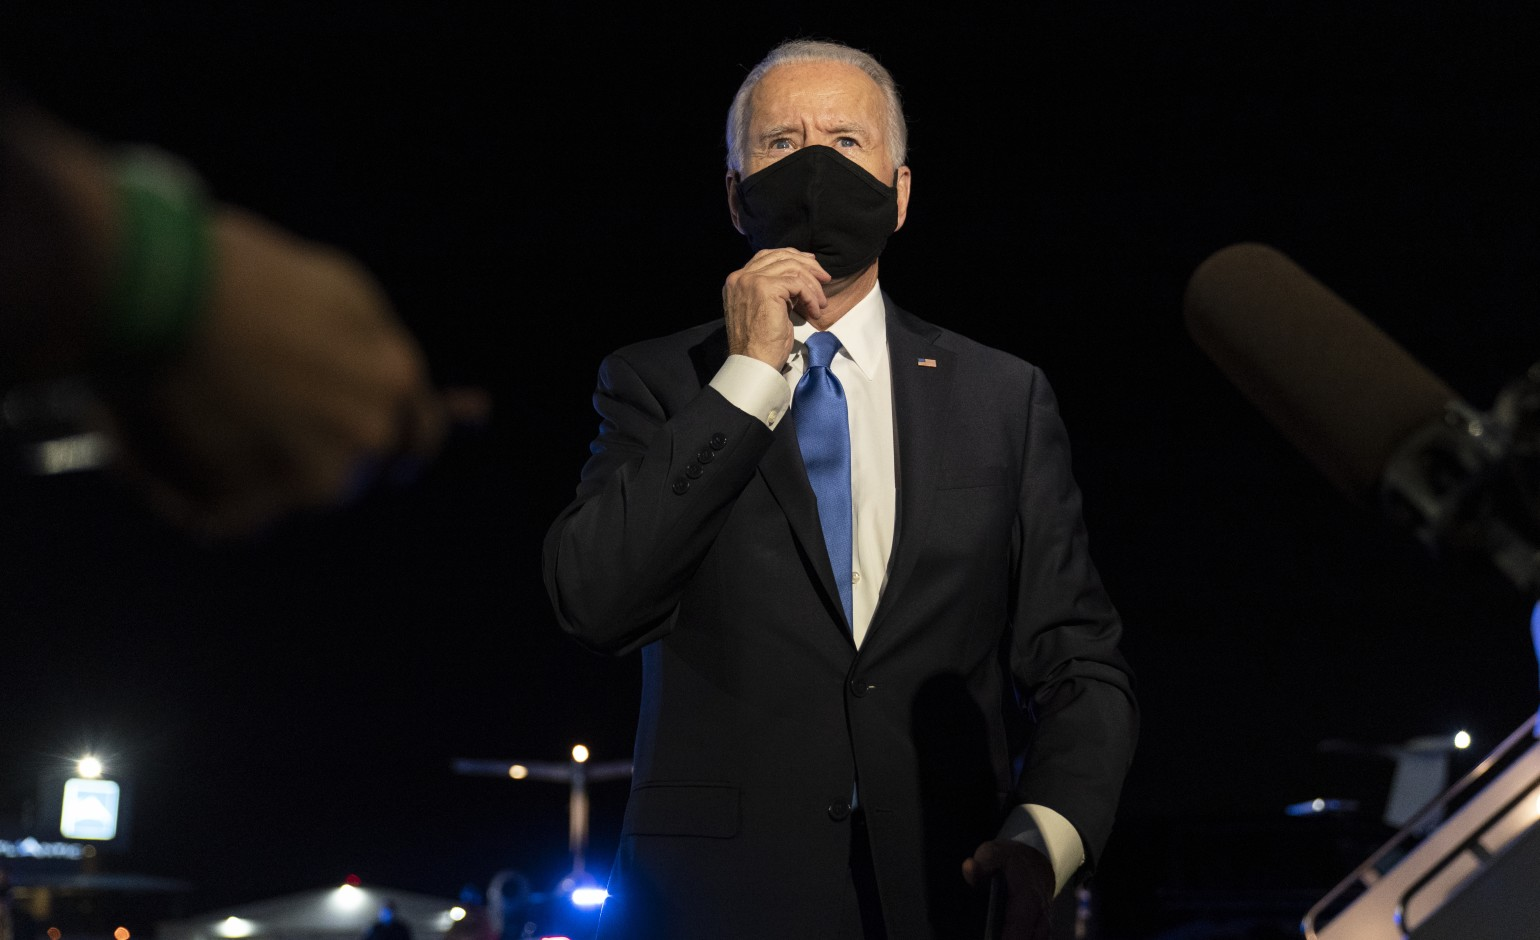 Yes, Joe Biden